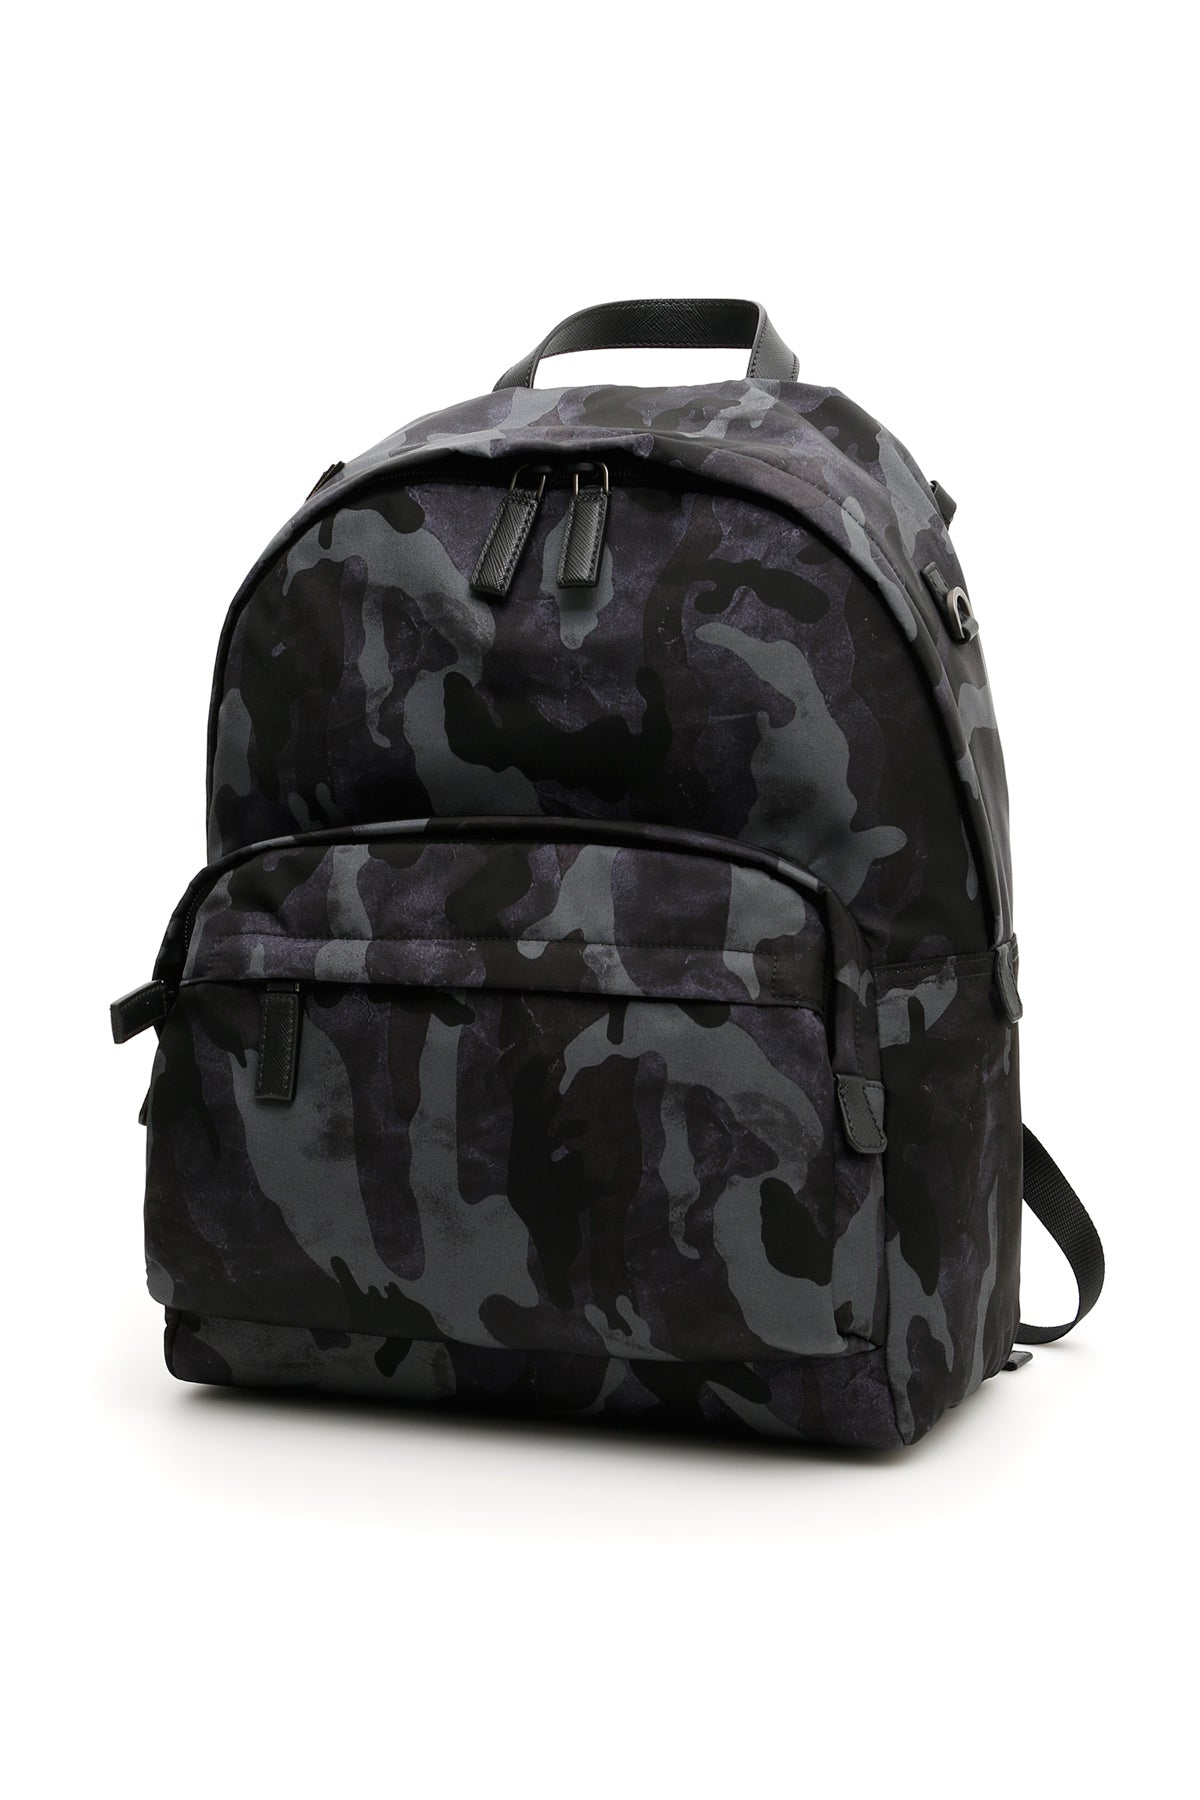 3083b84199c6 ... promo code for prada camouflage logo backpack multi ff391 dc960